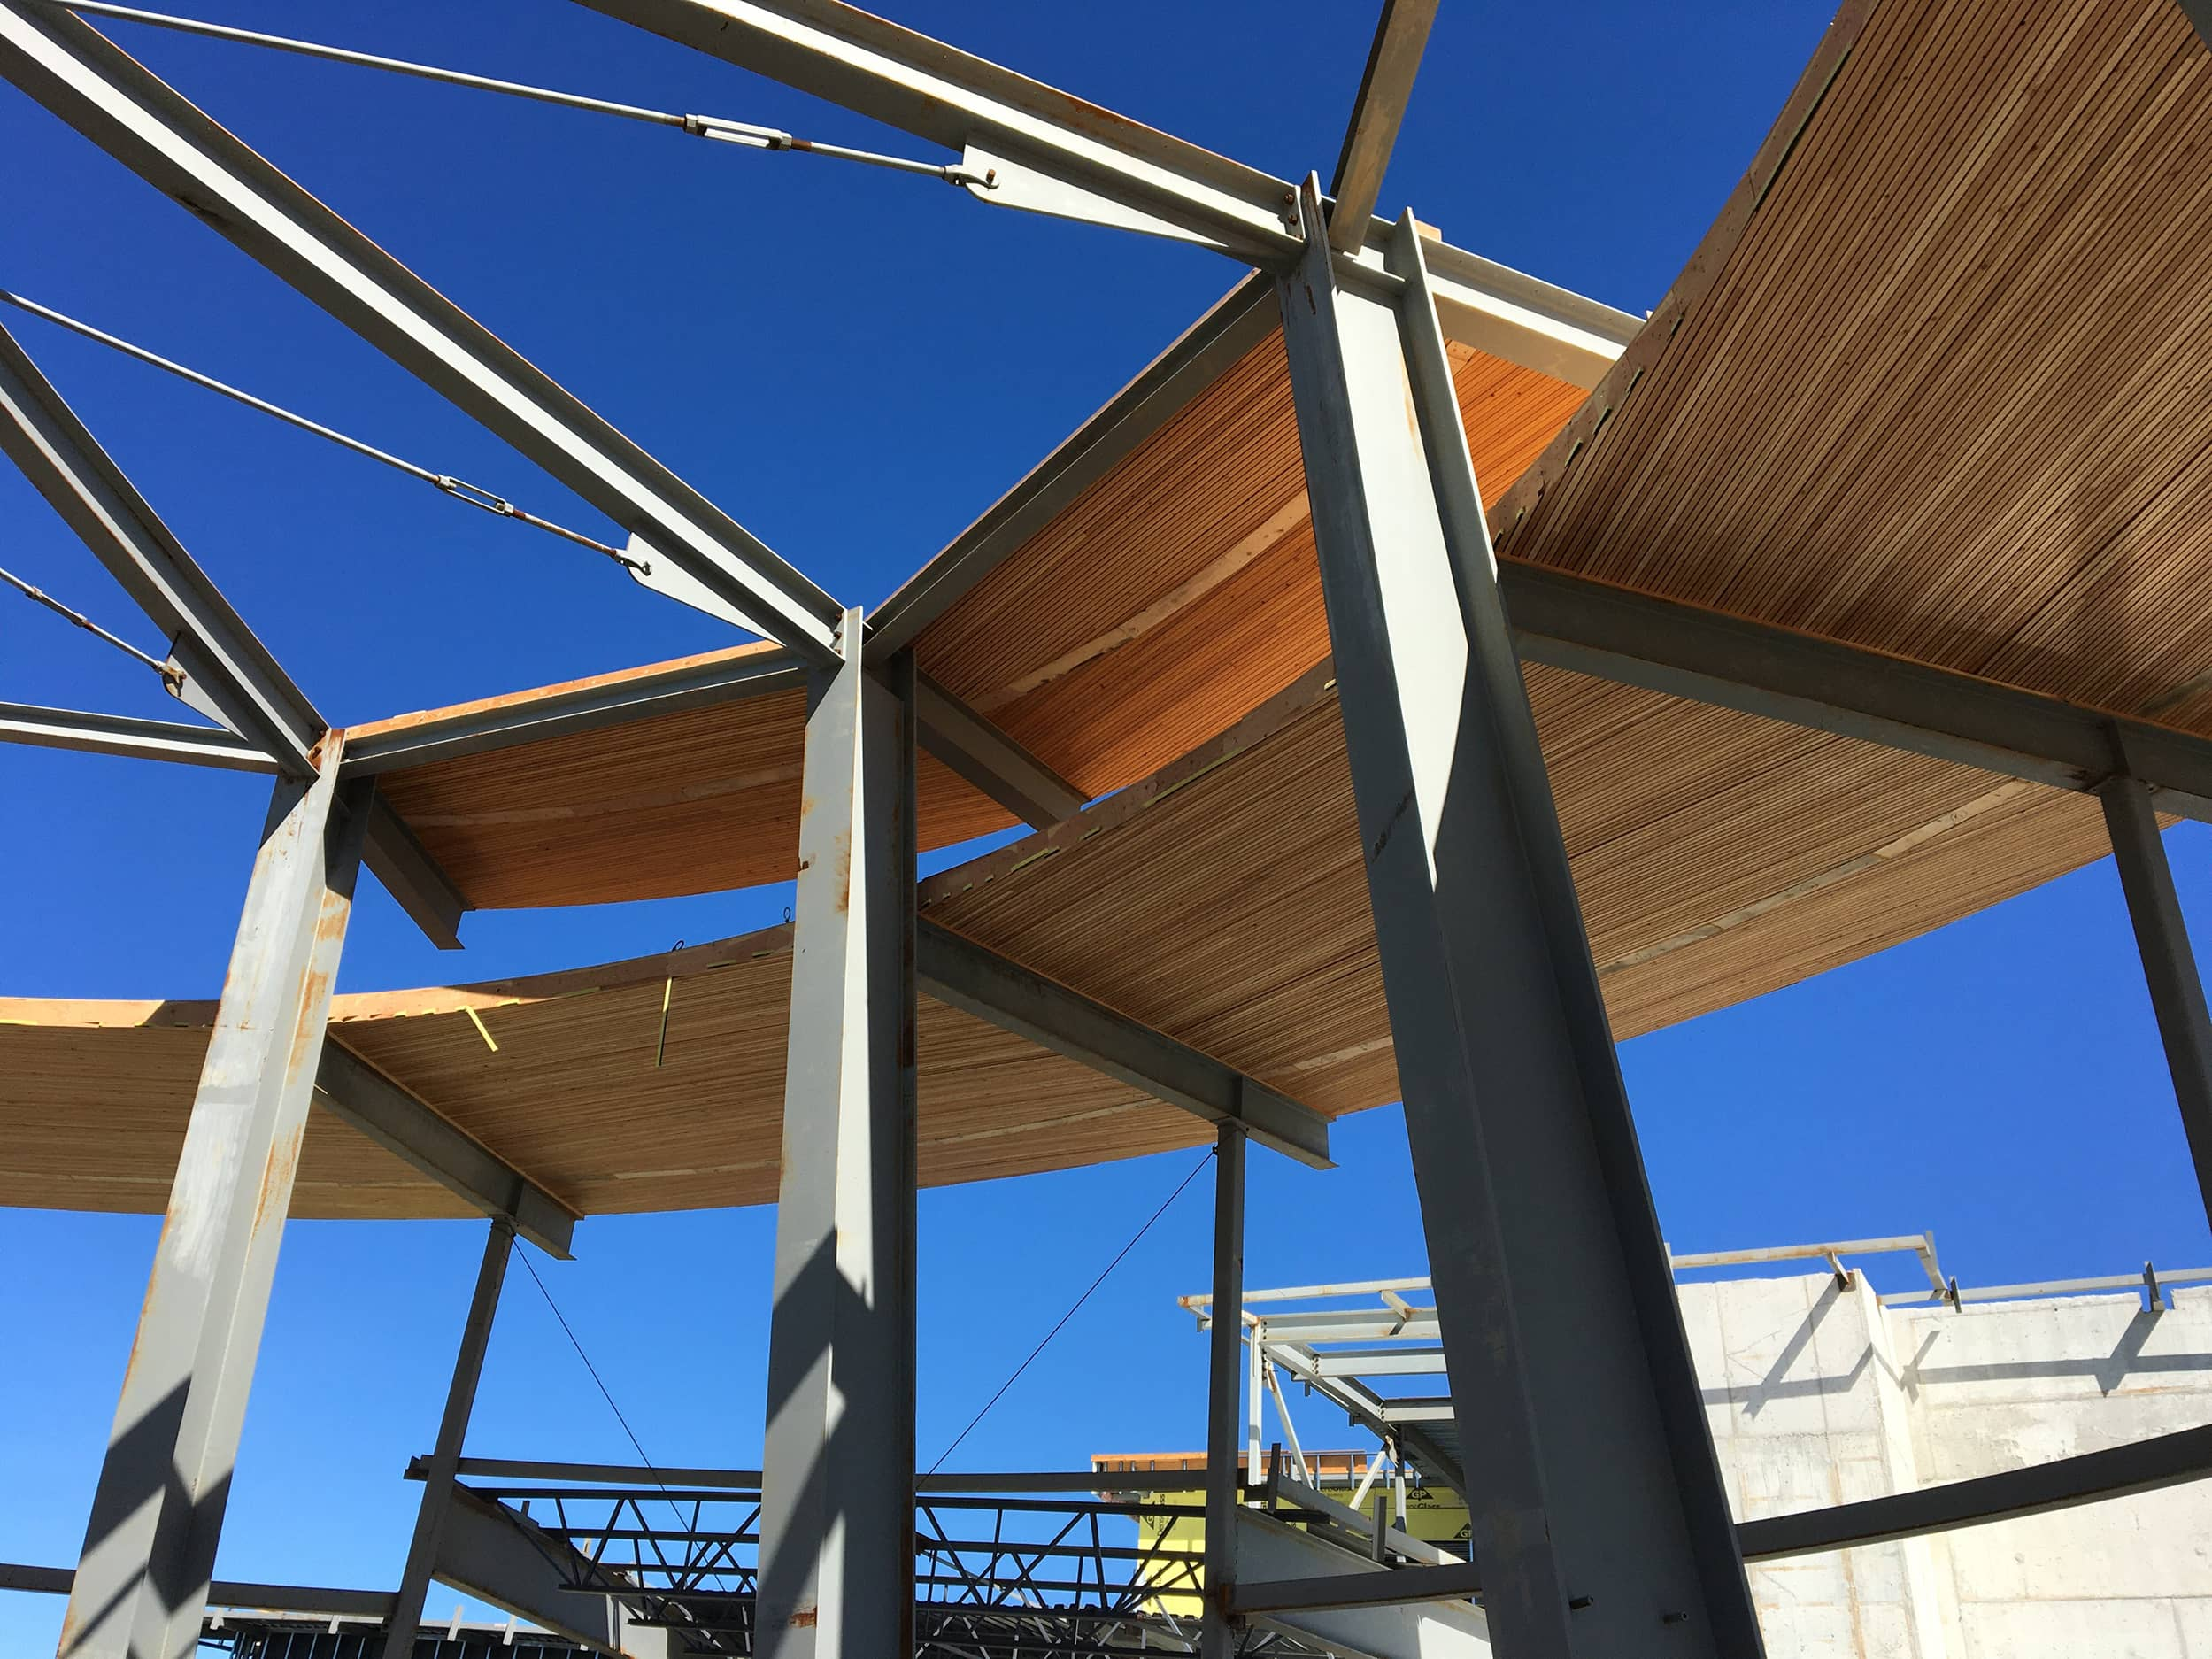 bbp grandview heights secondary construction steel and atrium beams